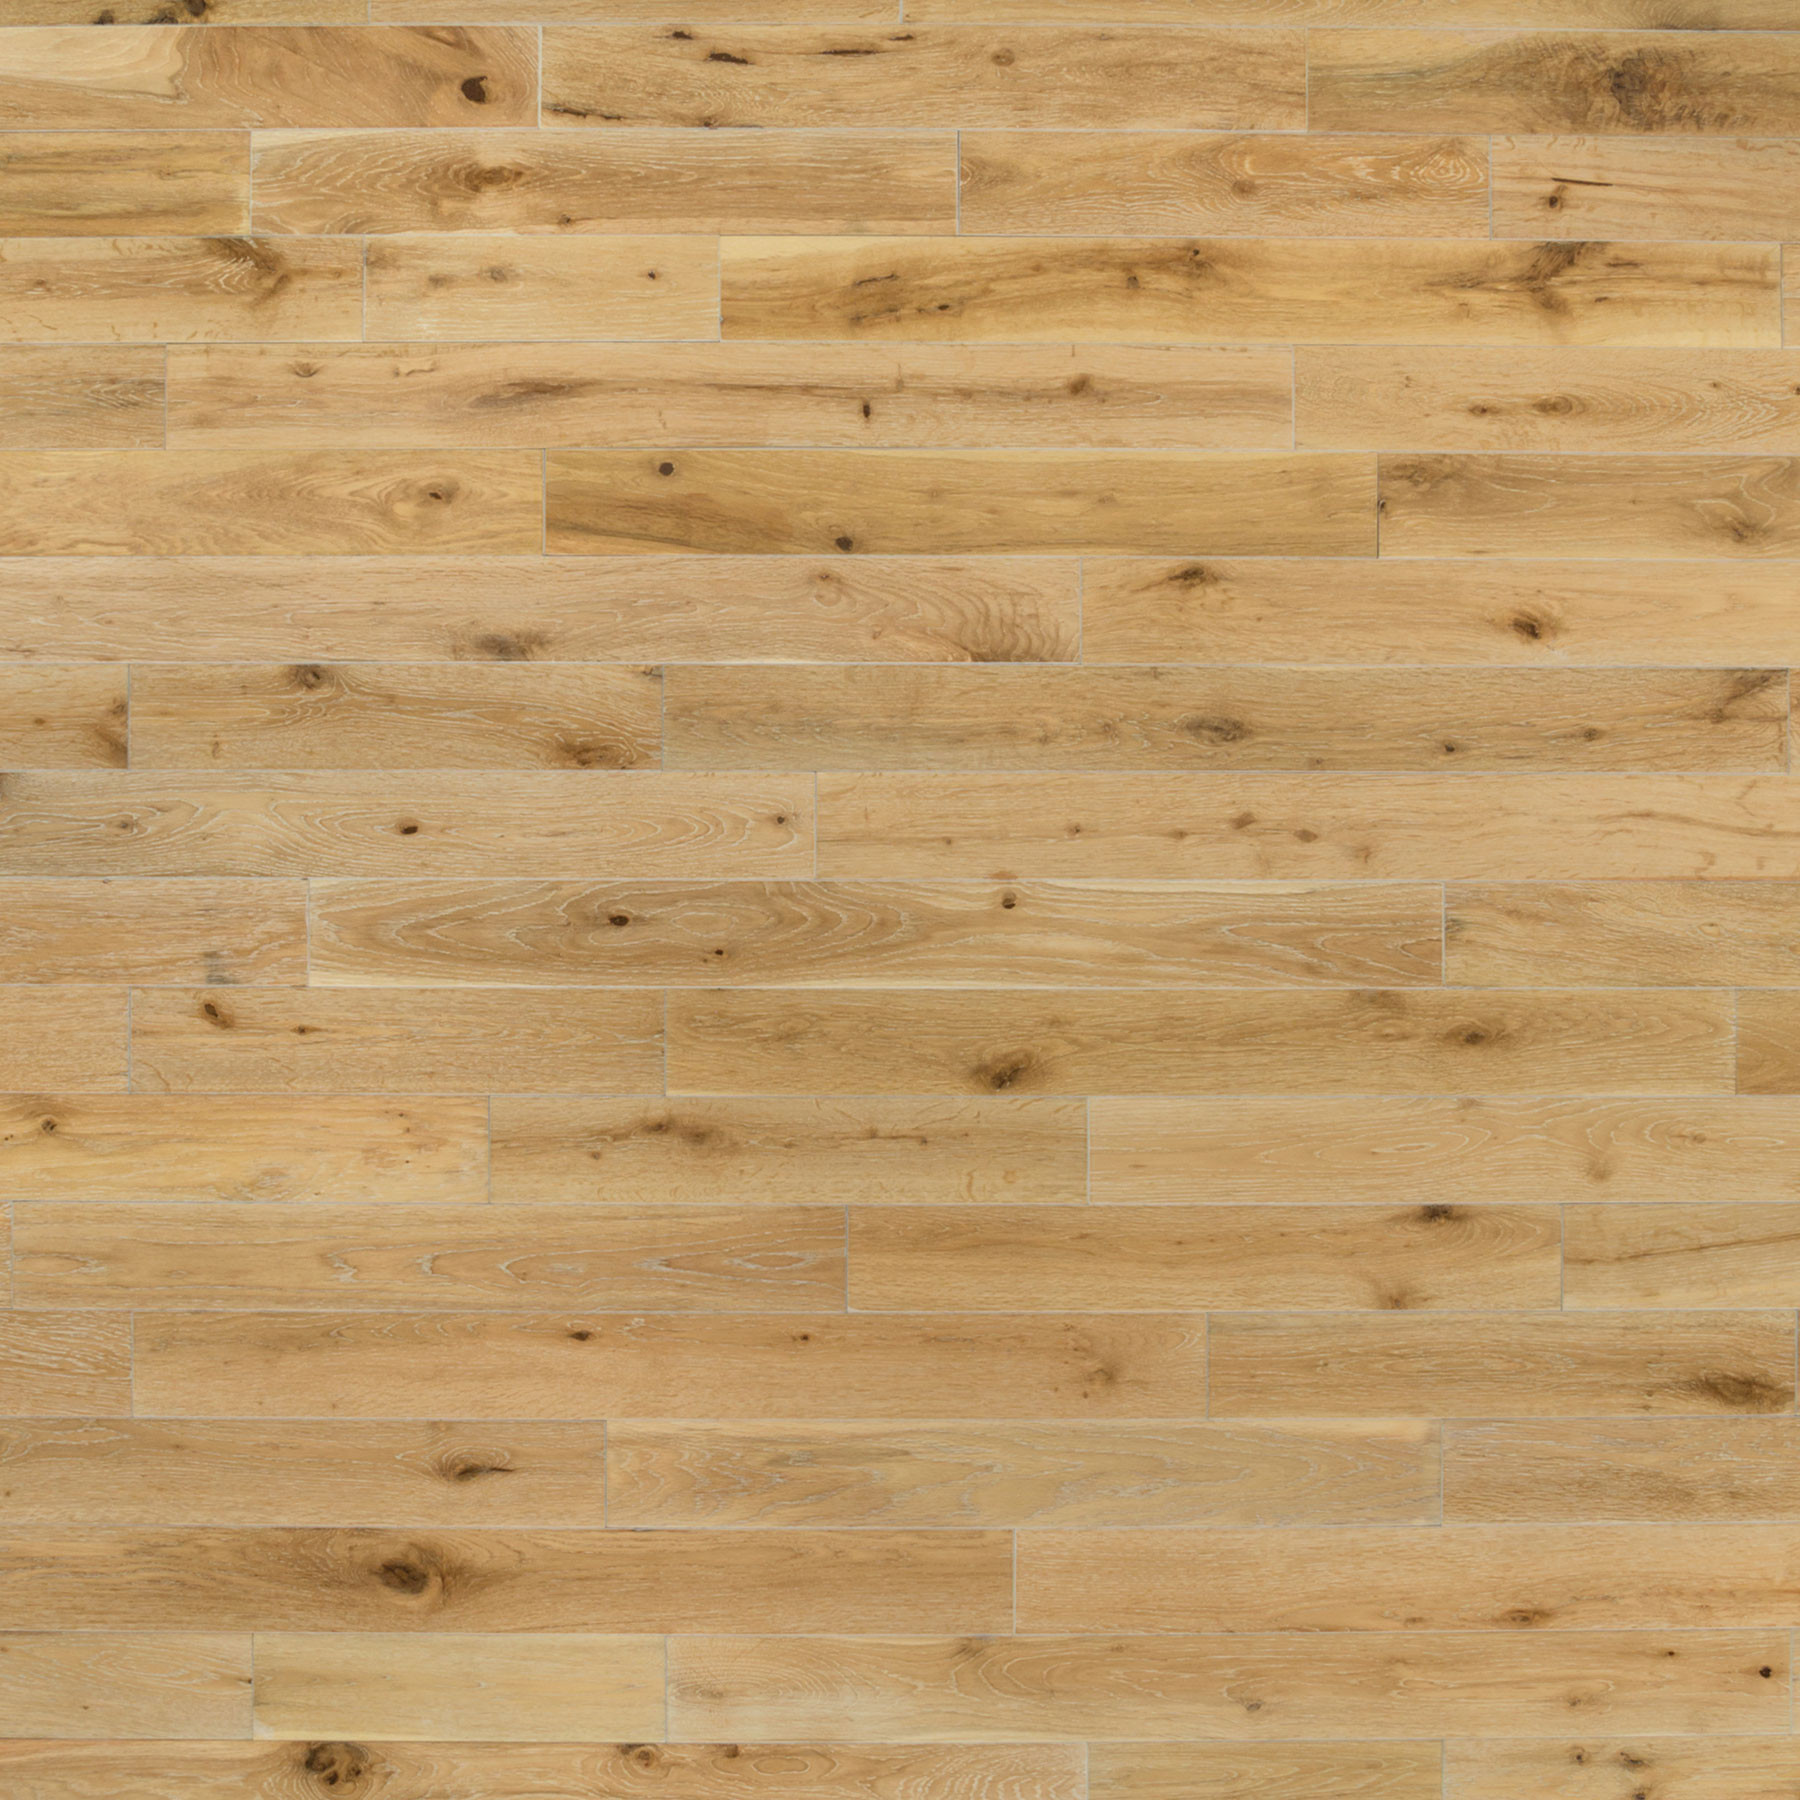 3 8 engineered hardwood flooring reviews of harbor oak 3 1 2″ white oak white washed etx surfaces pertaining to harbor oak 3 1 2″ white oak white washed